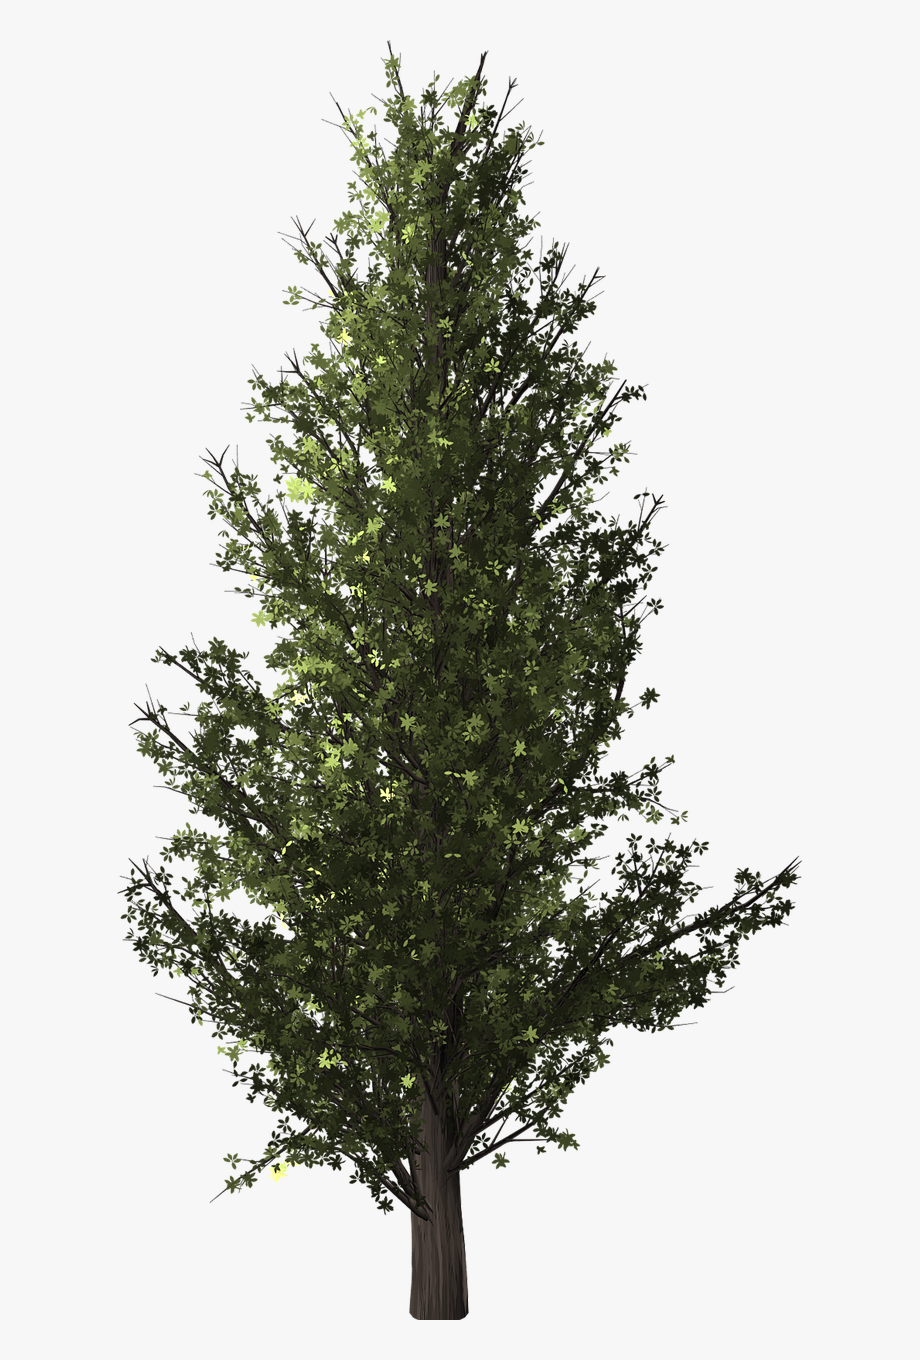 Forest, Tree, Poplar, Transparent, Isolated.